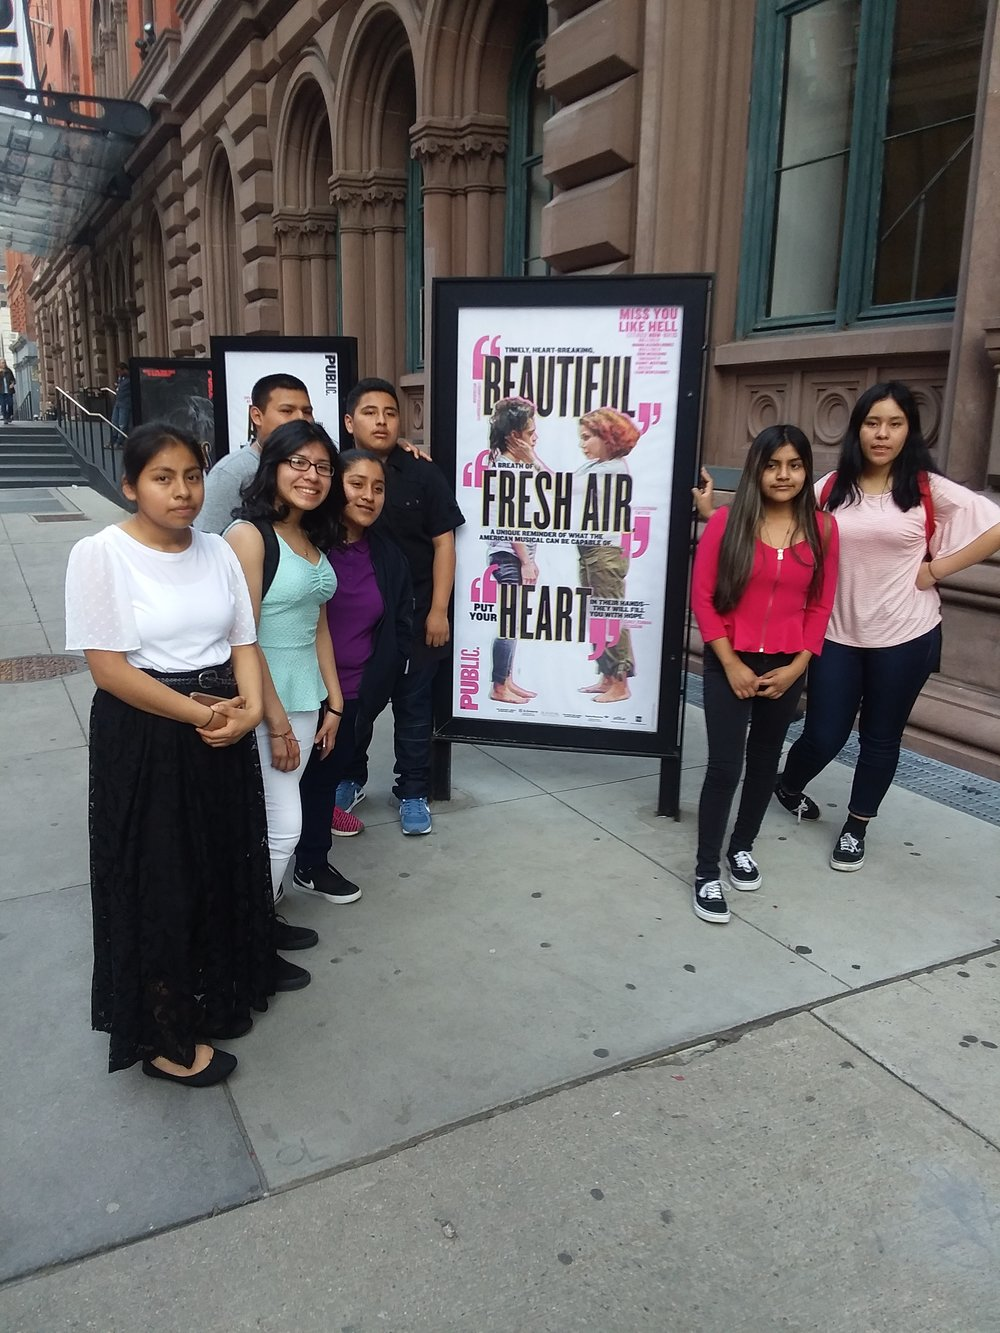 Students (some of them) outside The Public Theater